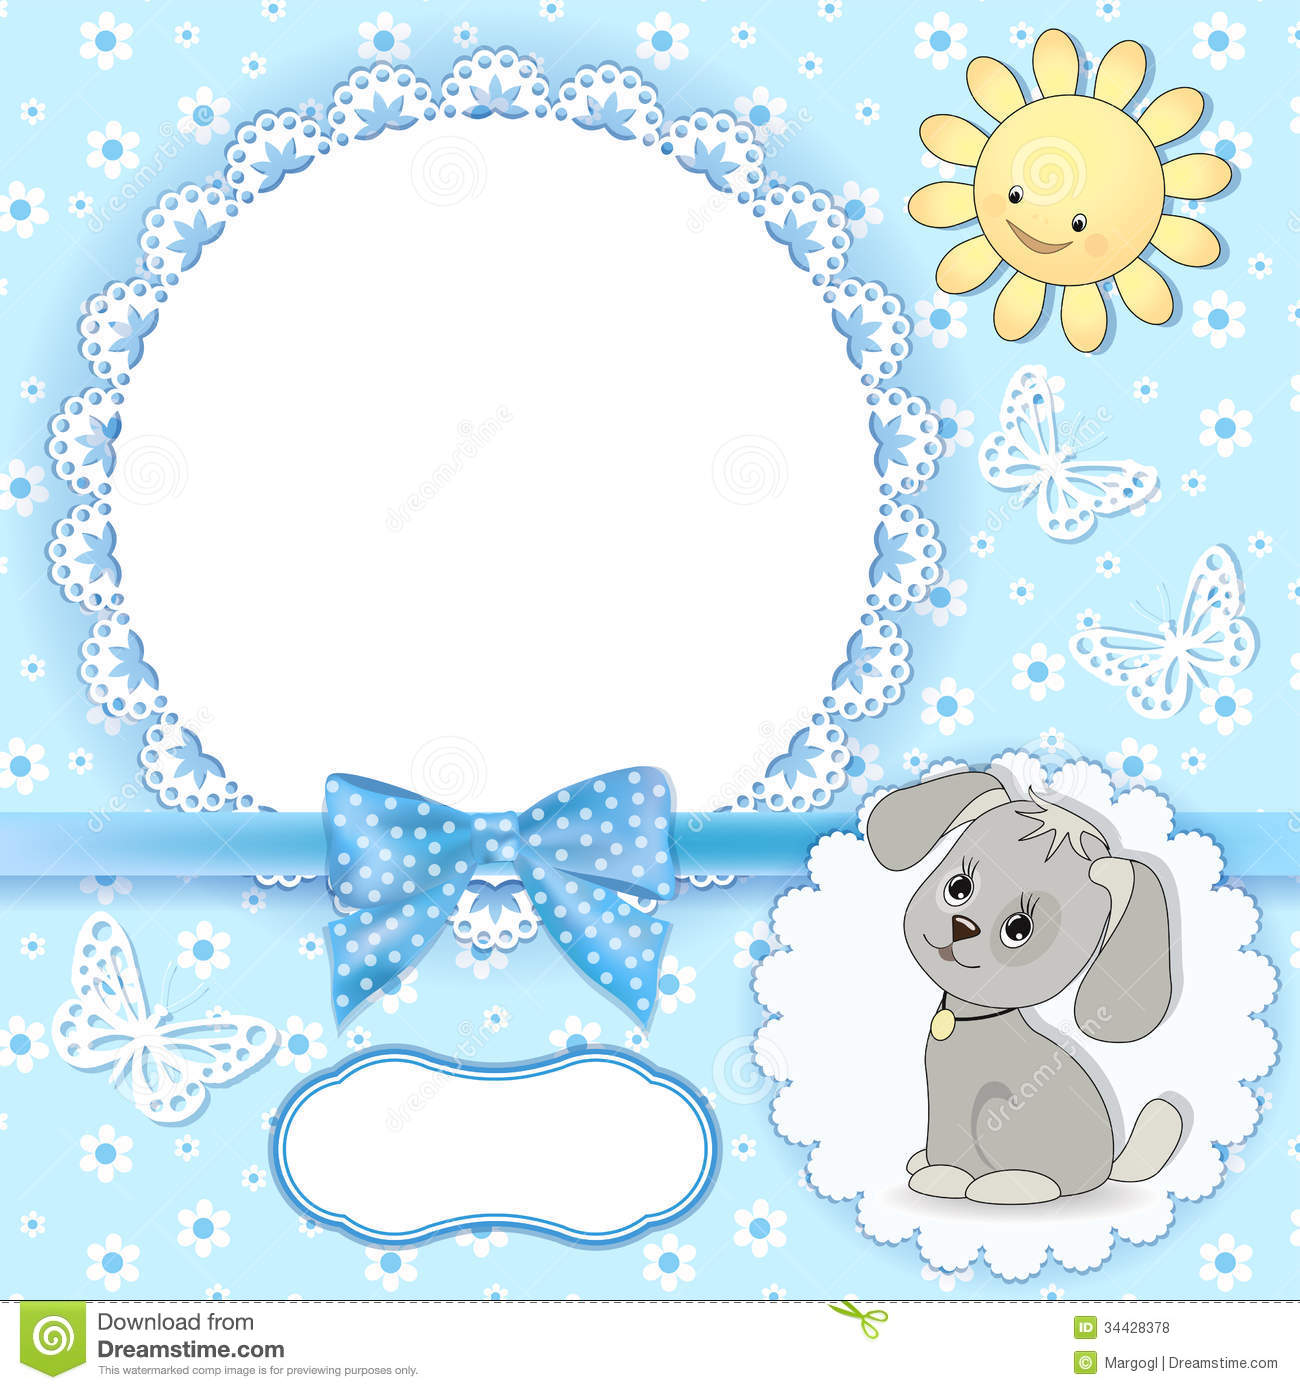 Baby Background With Frame. Stock Vector - Illustration of element ...